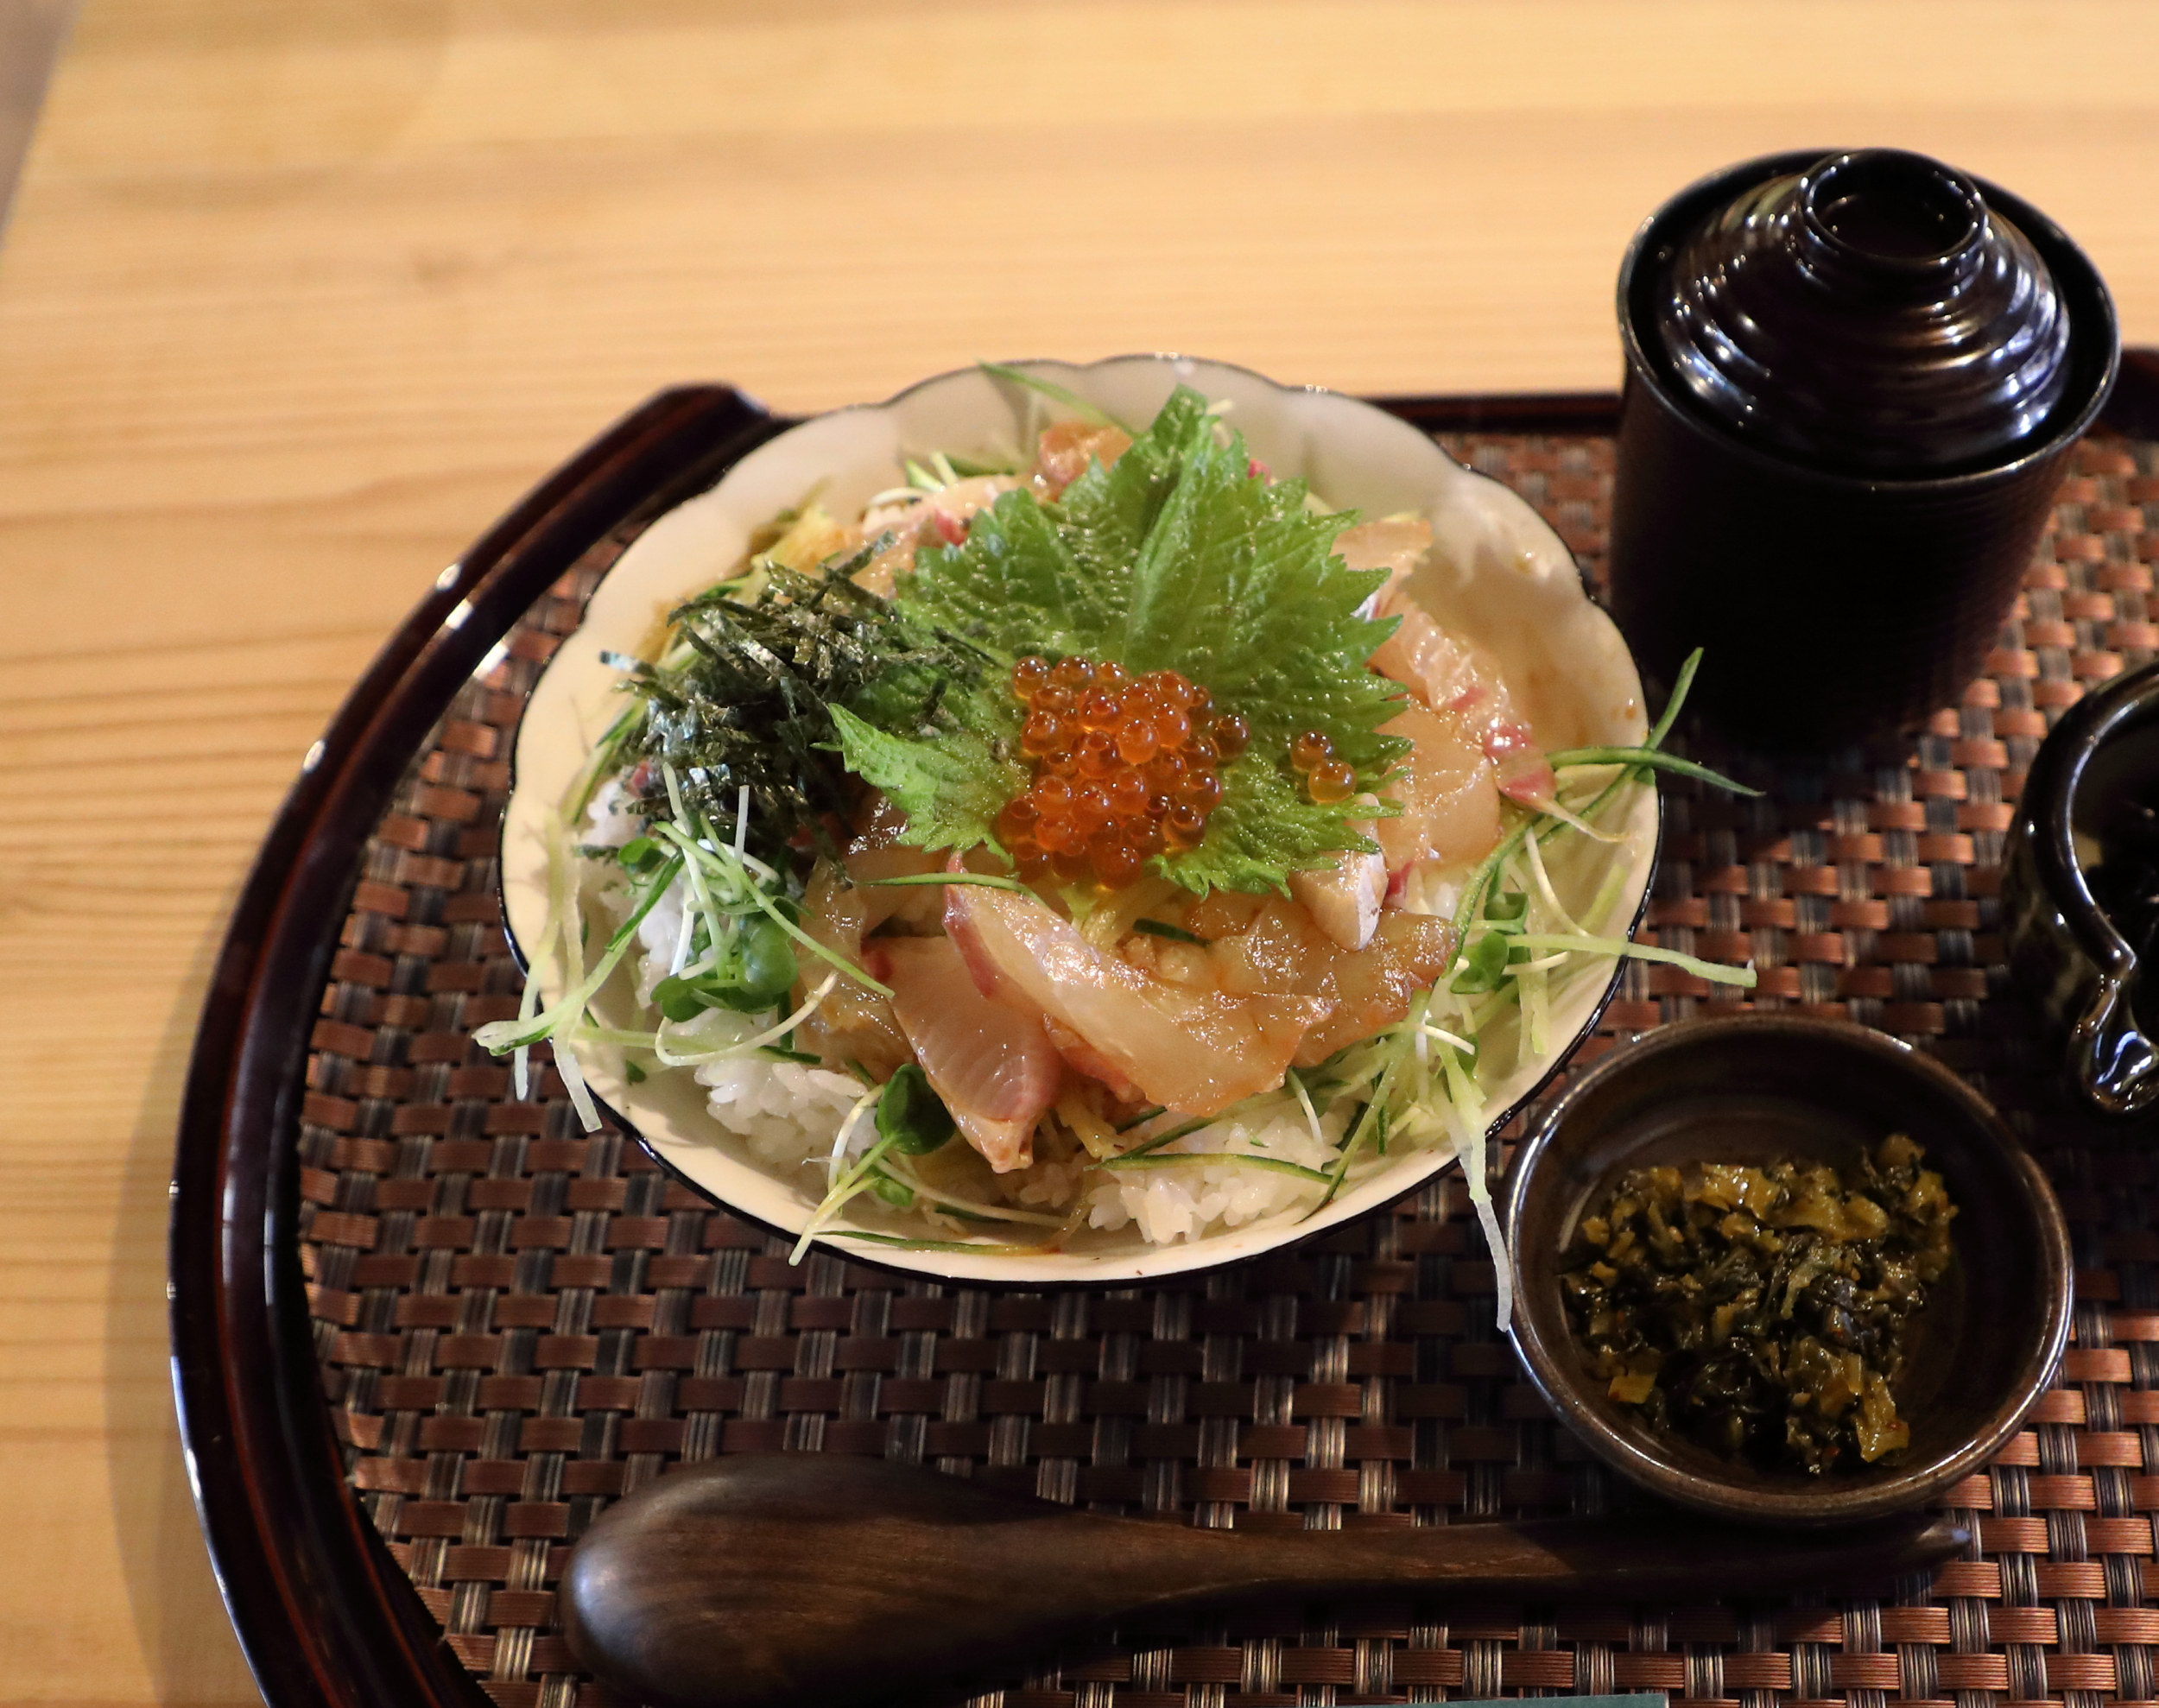 Freshly-caught sea bream ( tai ) is lightly marinated in sake and soy sauce before being served on a bed of delicately sweet sushi rice and garnished with peppery  kaiware  sprouts, salty  nori  seaweed strips, a minty  shiso  leaf, and creamy  ikura  salmon roe.